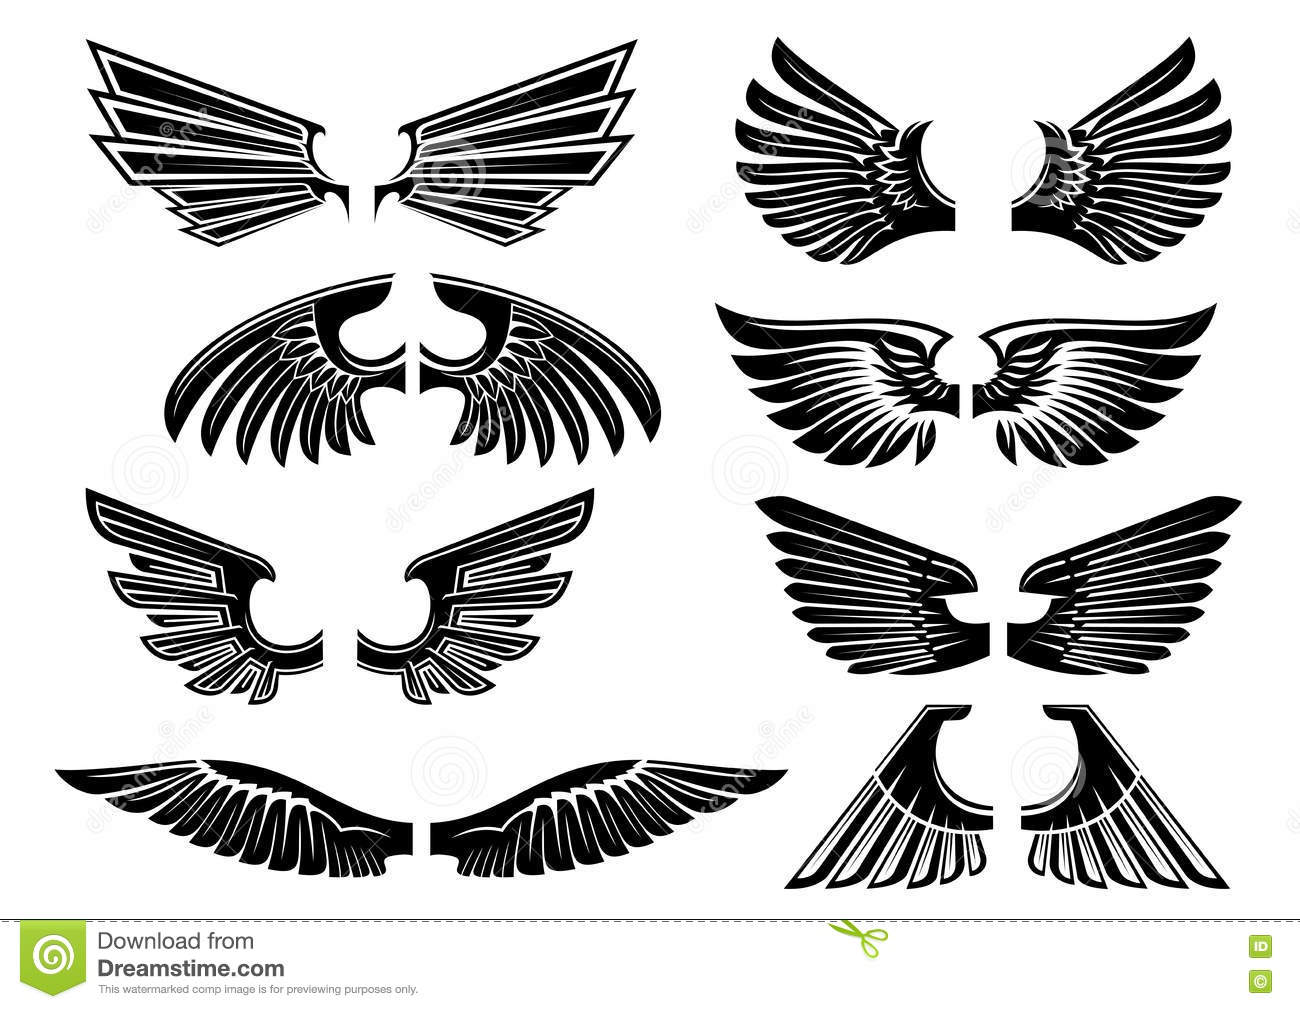 tribal angel wings for heraldry or tattoo design stock vector illustration of celtic falcon. Black Bedroom Furniture Sets. Home Design Ideas